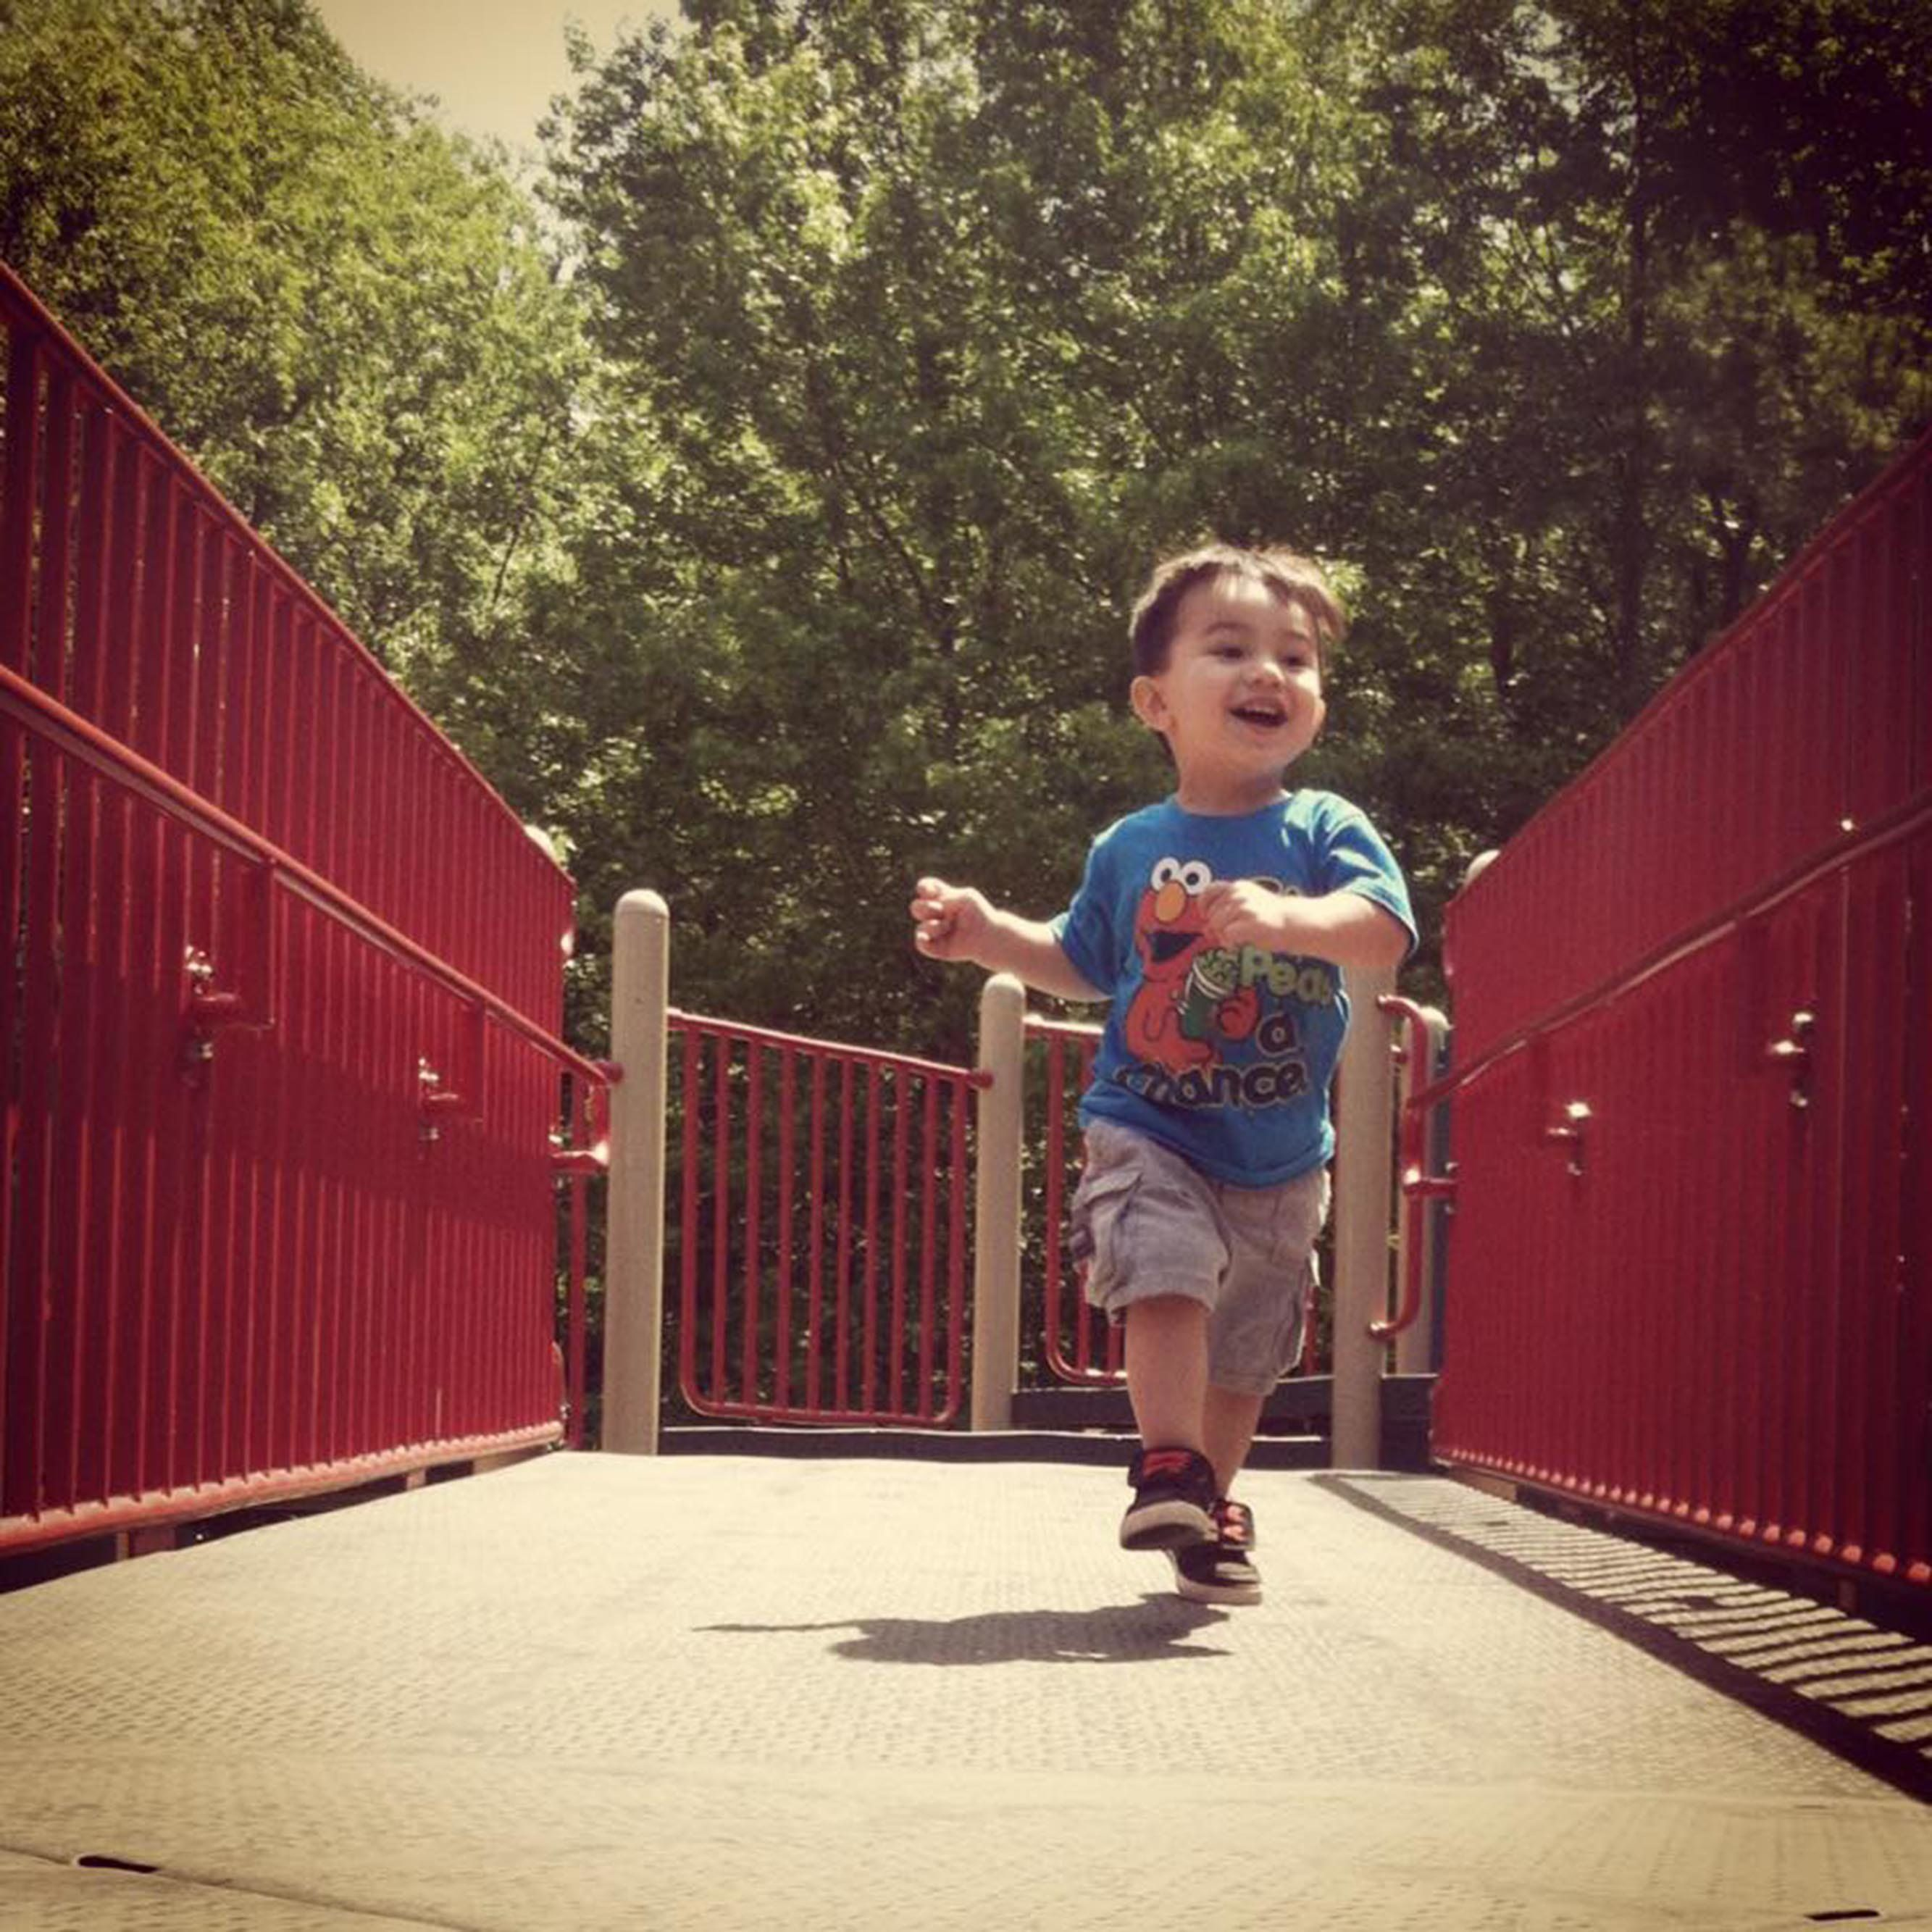 My son's happy place is any park where he can run free.